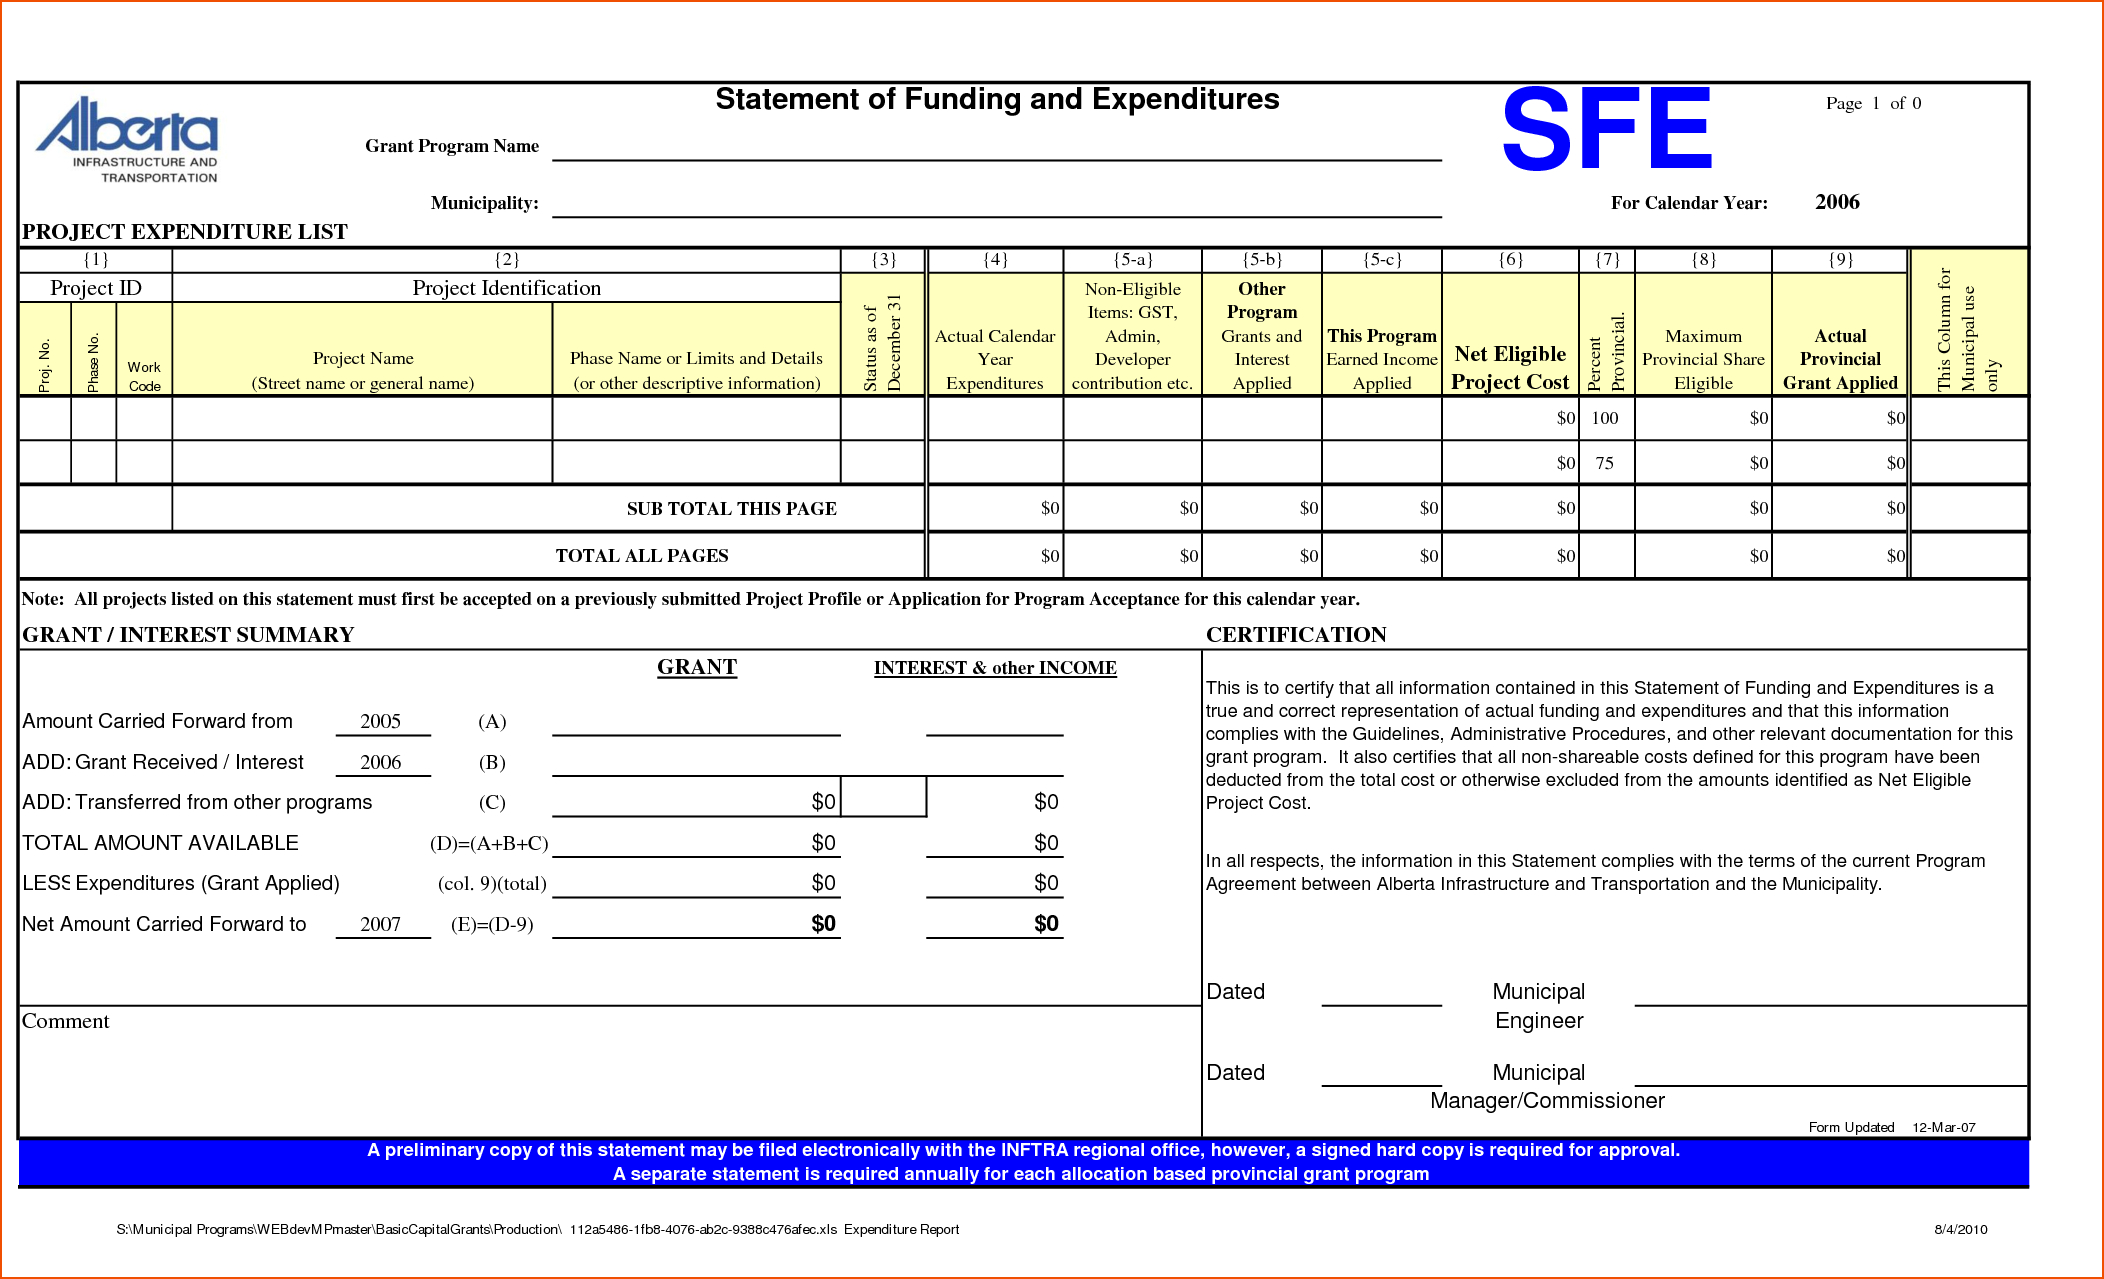 011 Template Ideas Status Report Project Outstanding Excel with regard to Project Status Report Template Word 2010